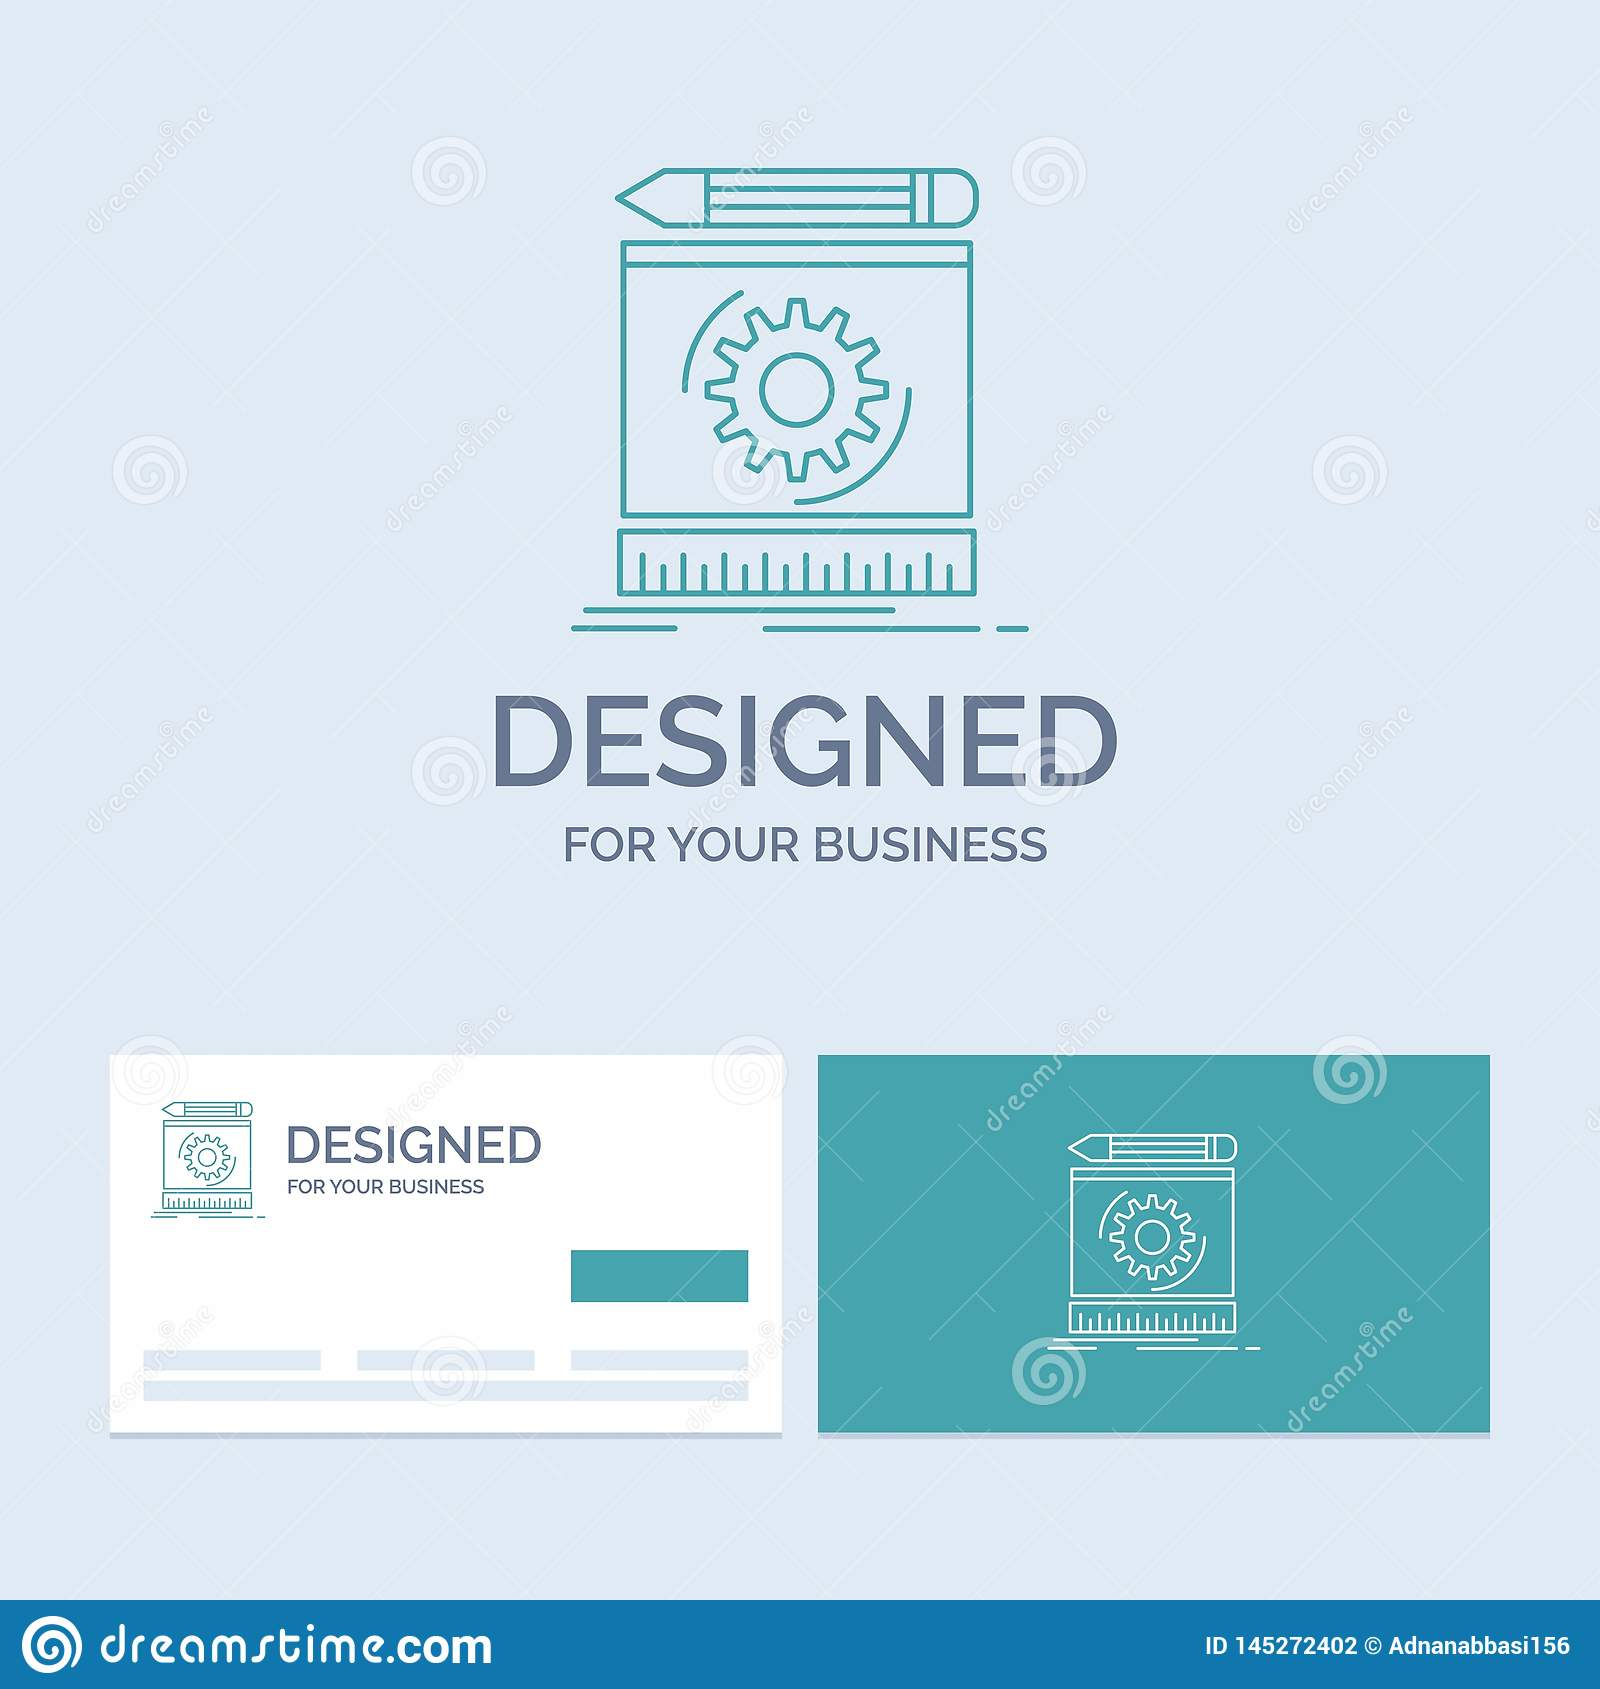 Draft, engineering, process, prototype, prototyping Business Logo Line Icon Symbol for your business. Turquoise Business Cards